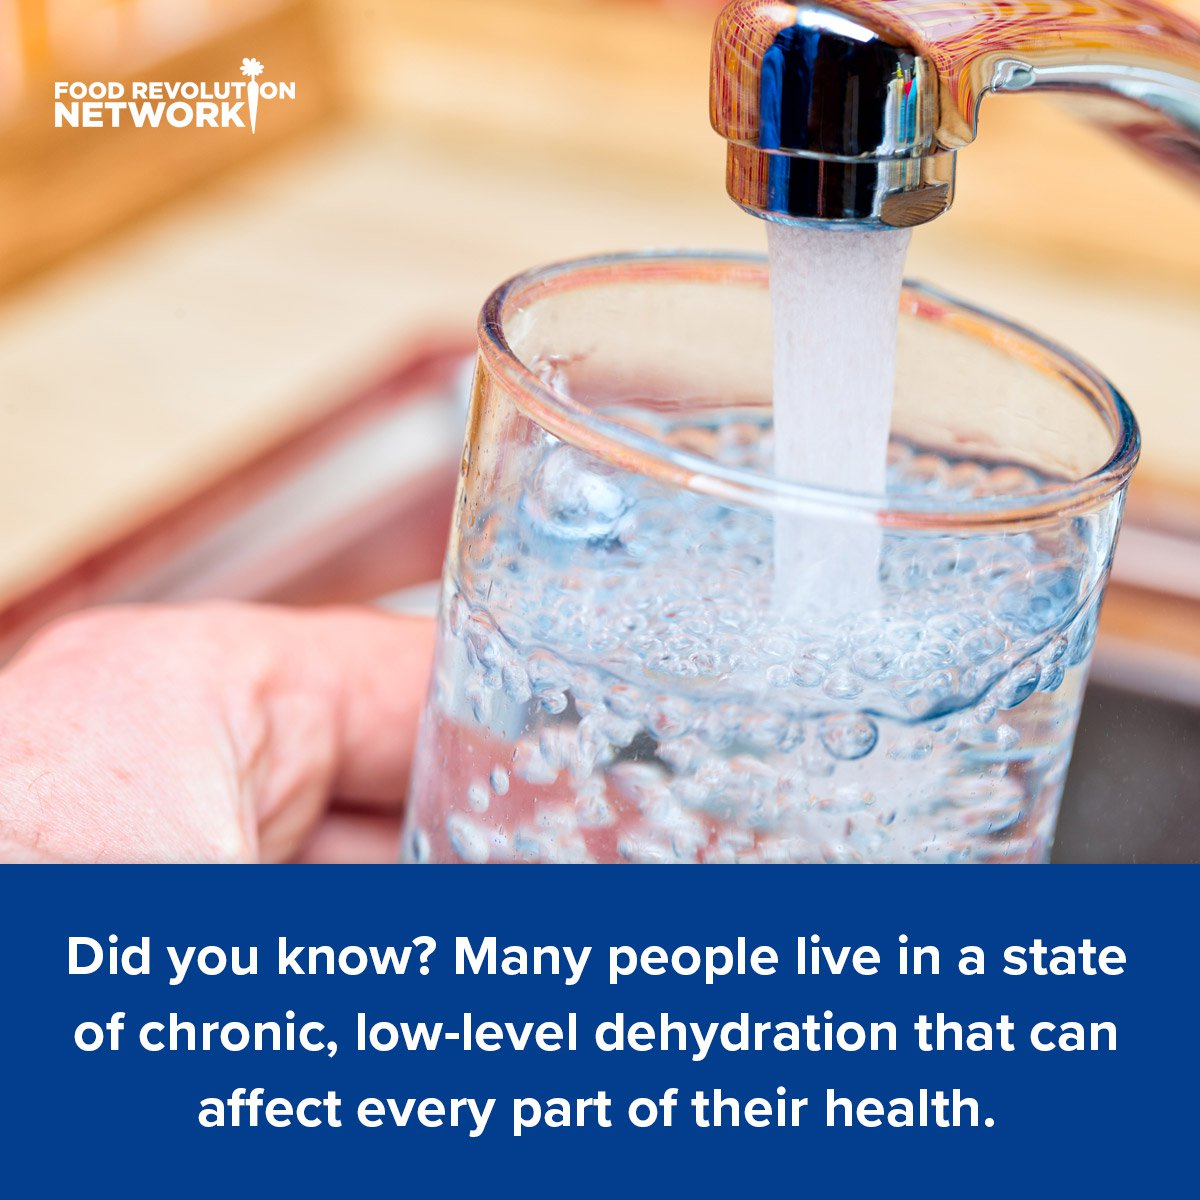 Did you know? Many people live in a state of chronic, low-level dehydration that can affect every part of their health.